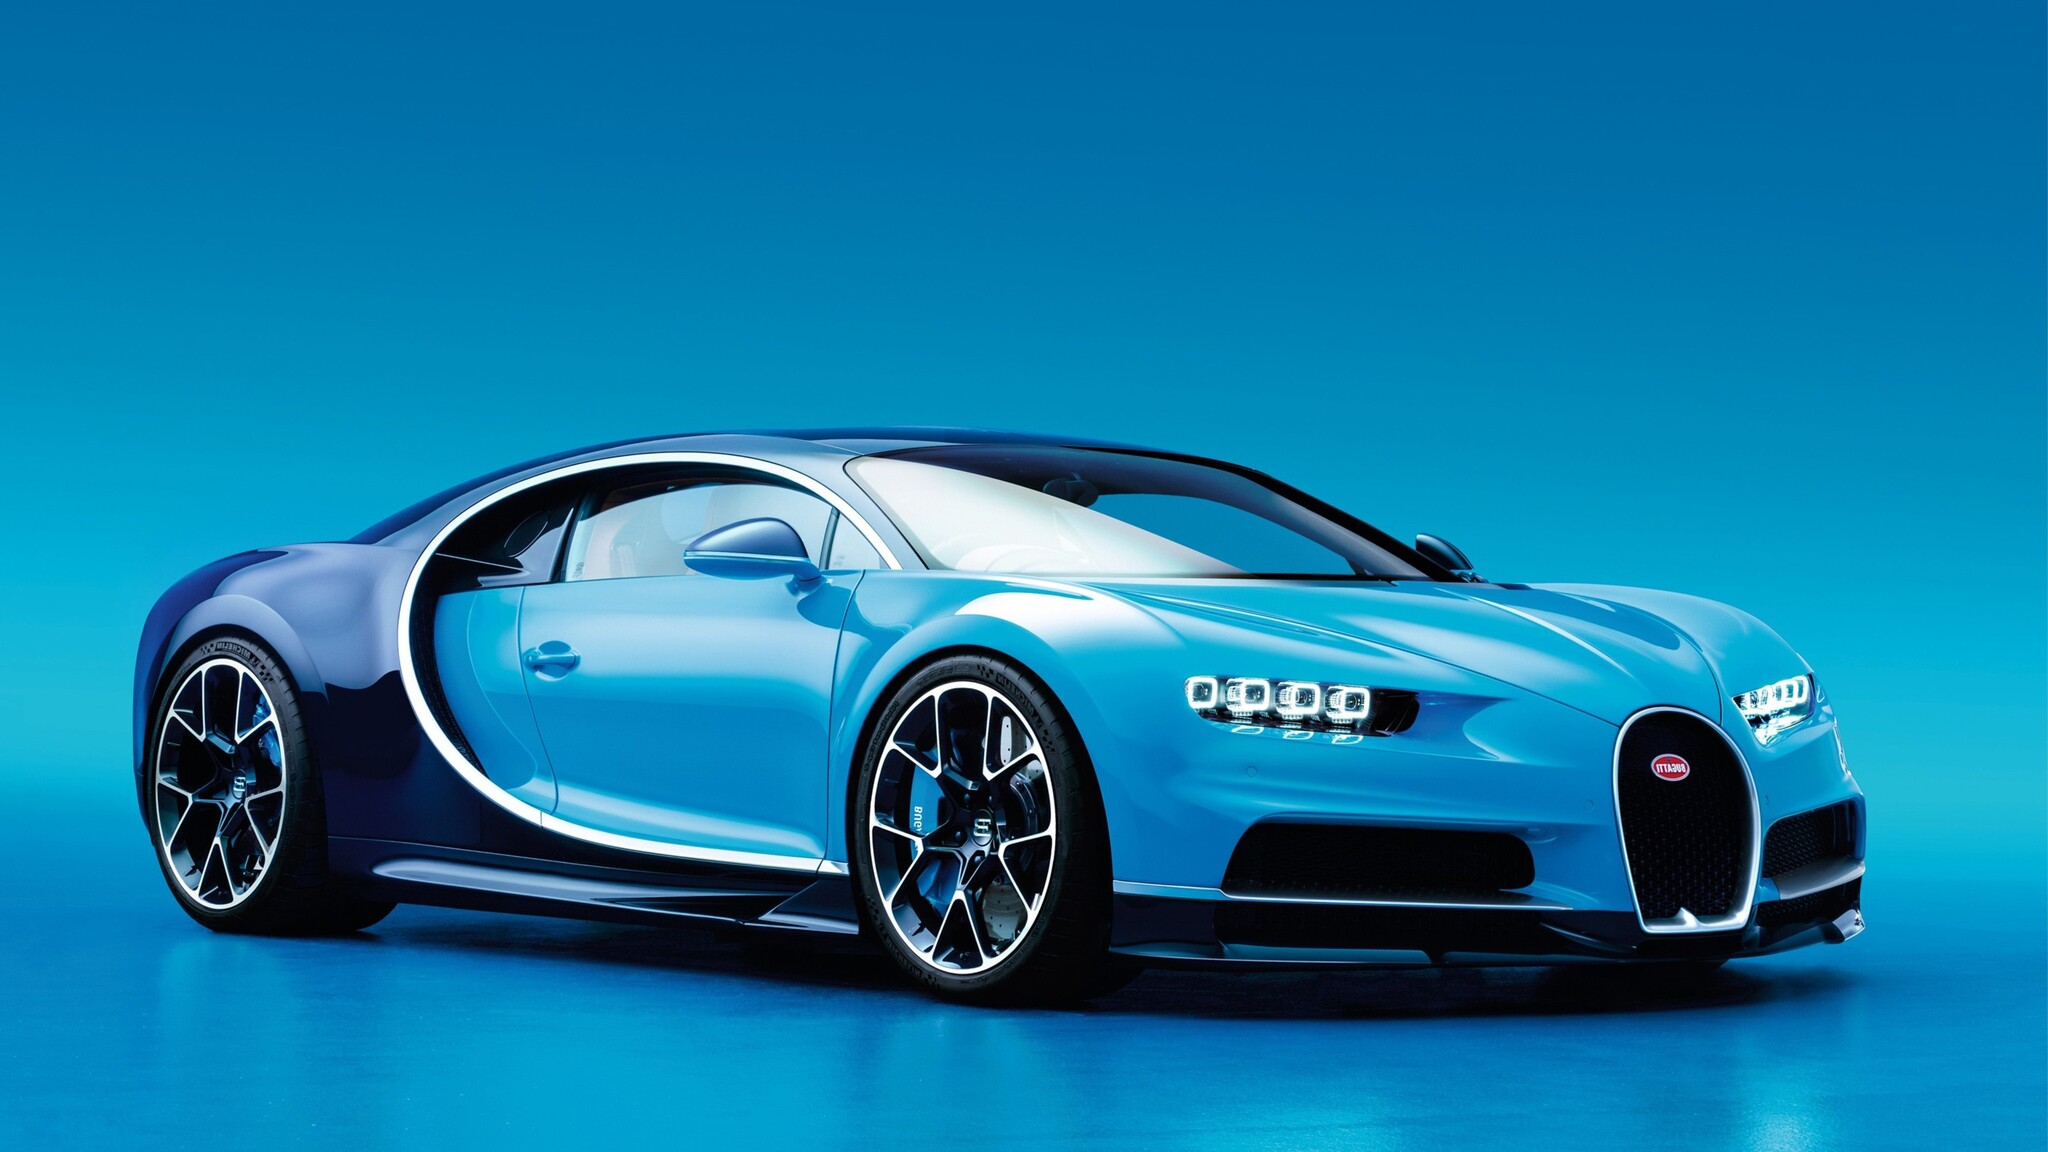 download 2016 bugatti chiron hd 4k wallpapers in 2048x1152. Black Bedroom Furniture Sets. Home Design Ideas